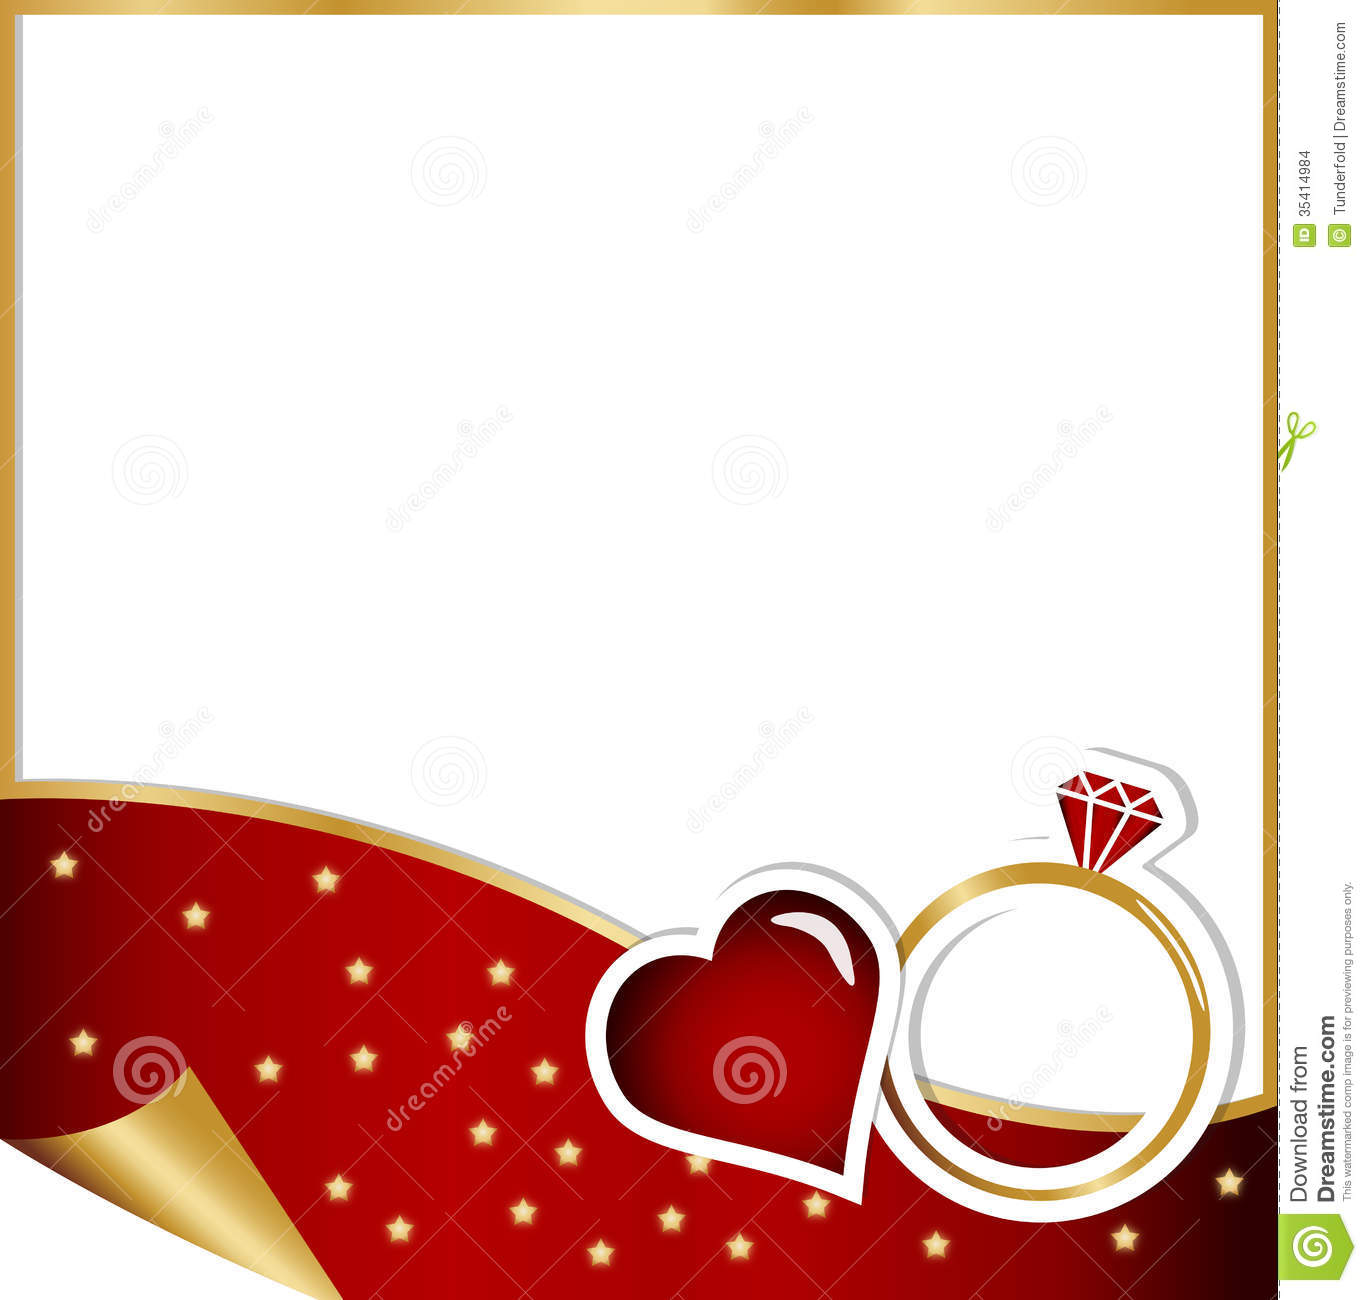 Engagement Card - Christmas Concept Stock Images - Image: 35414984